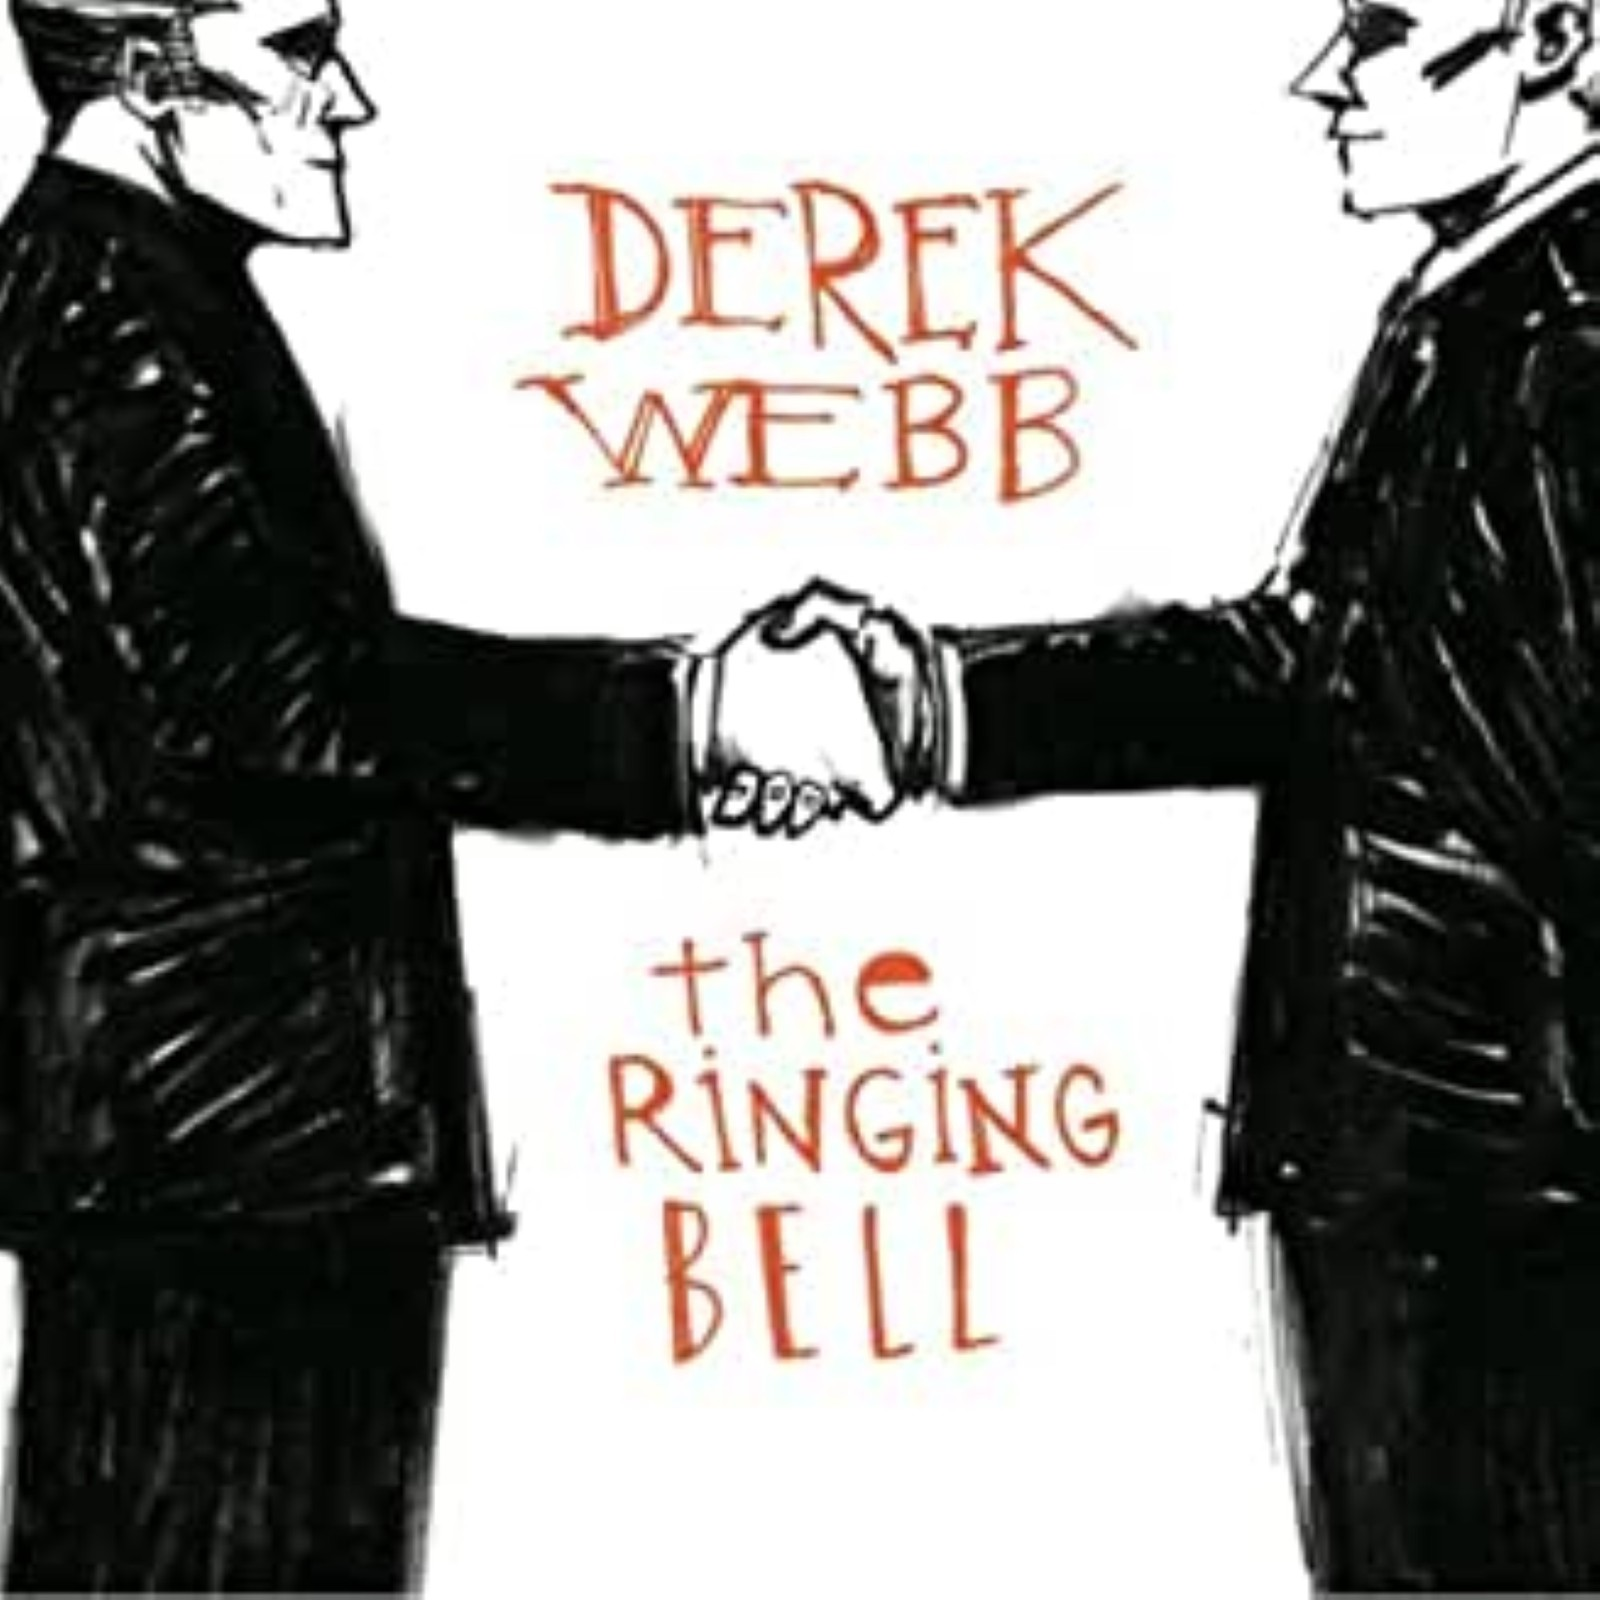 The Ringing Bell by Derek Webb Cd